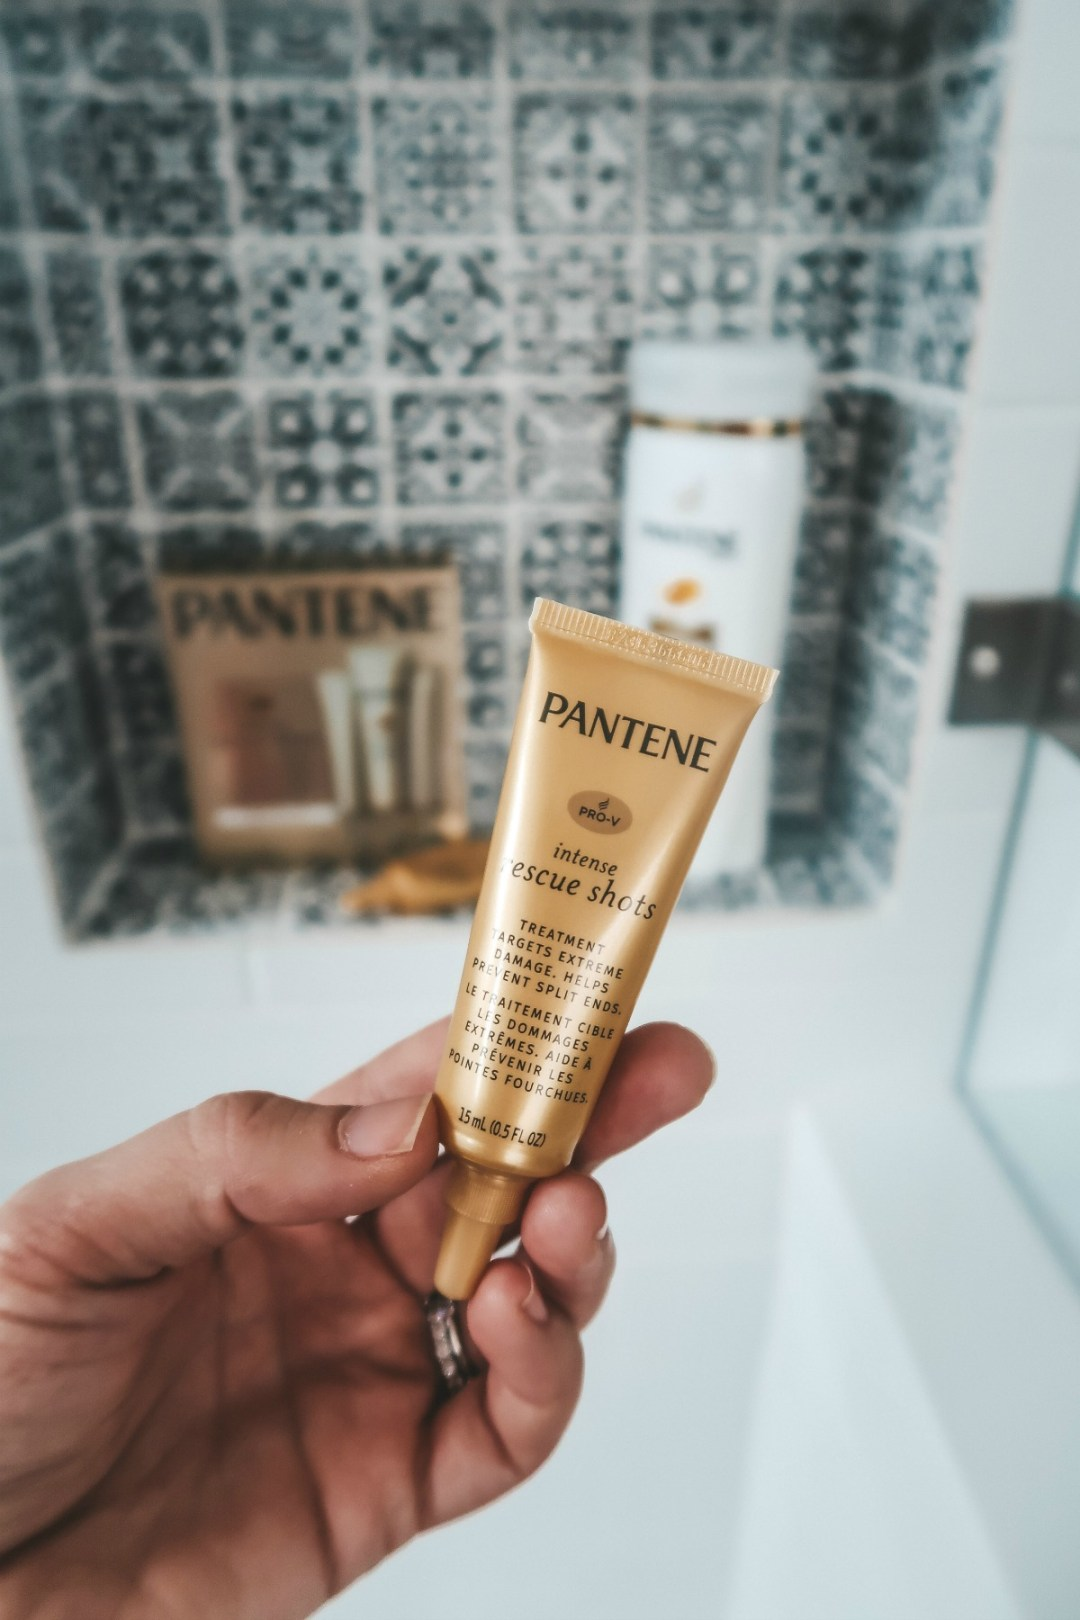 Pantene rescue shots review, Pantene rescue shots